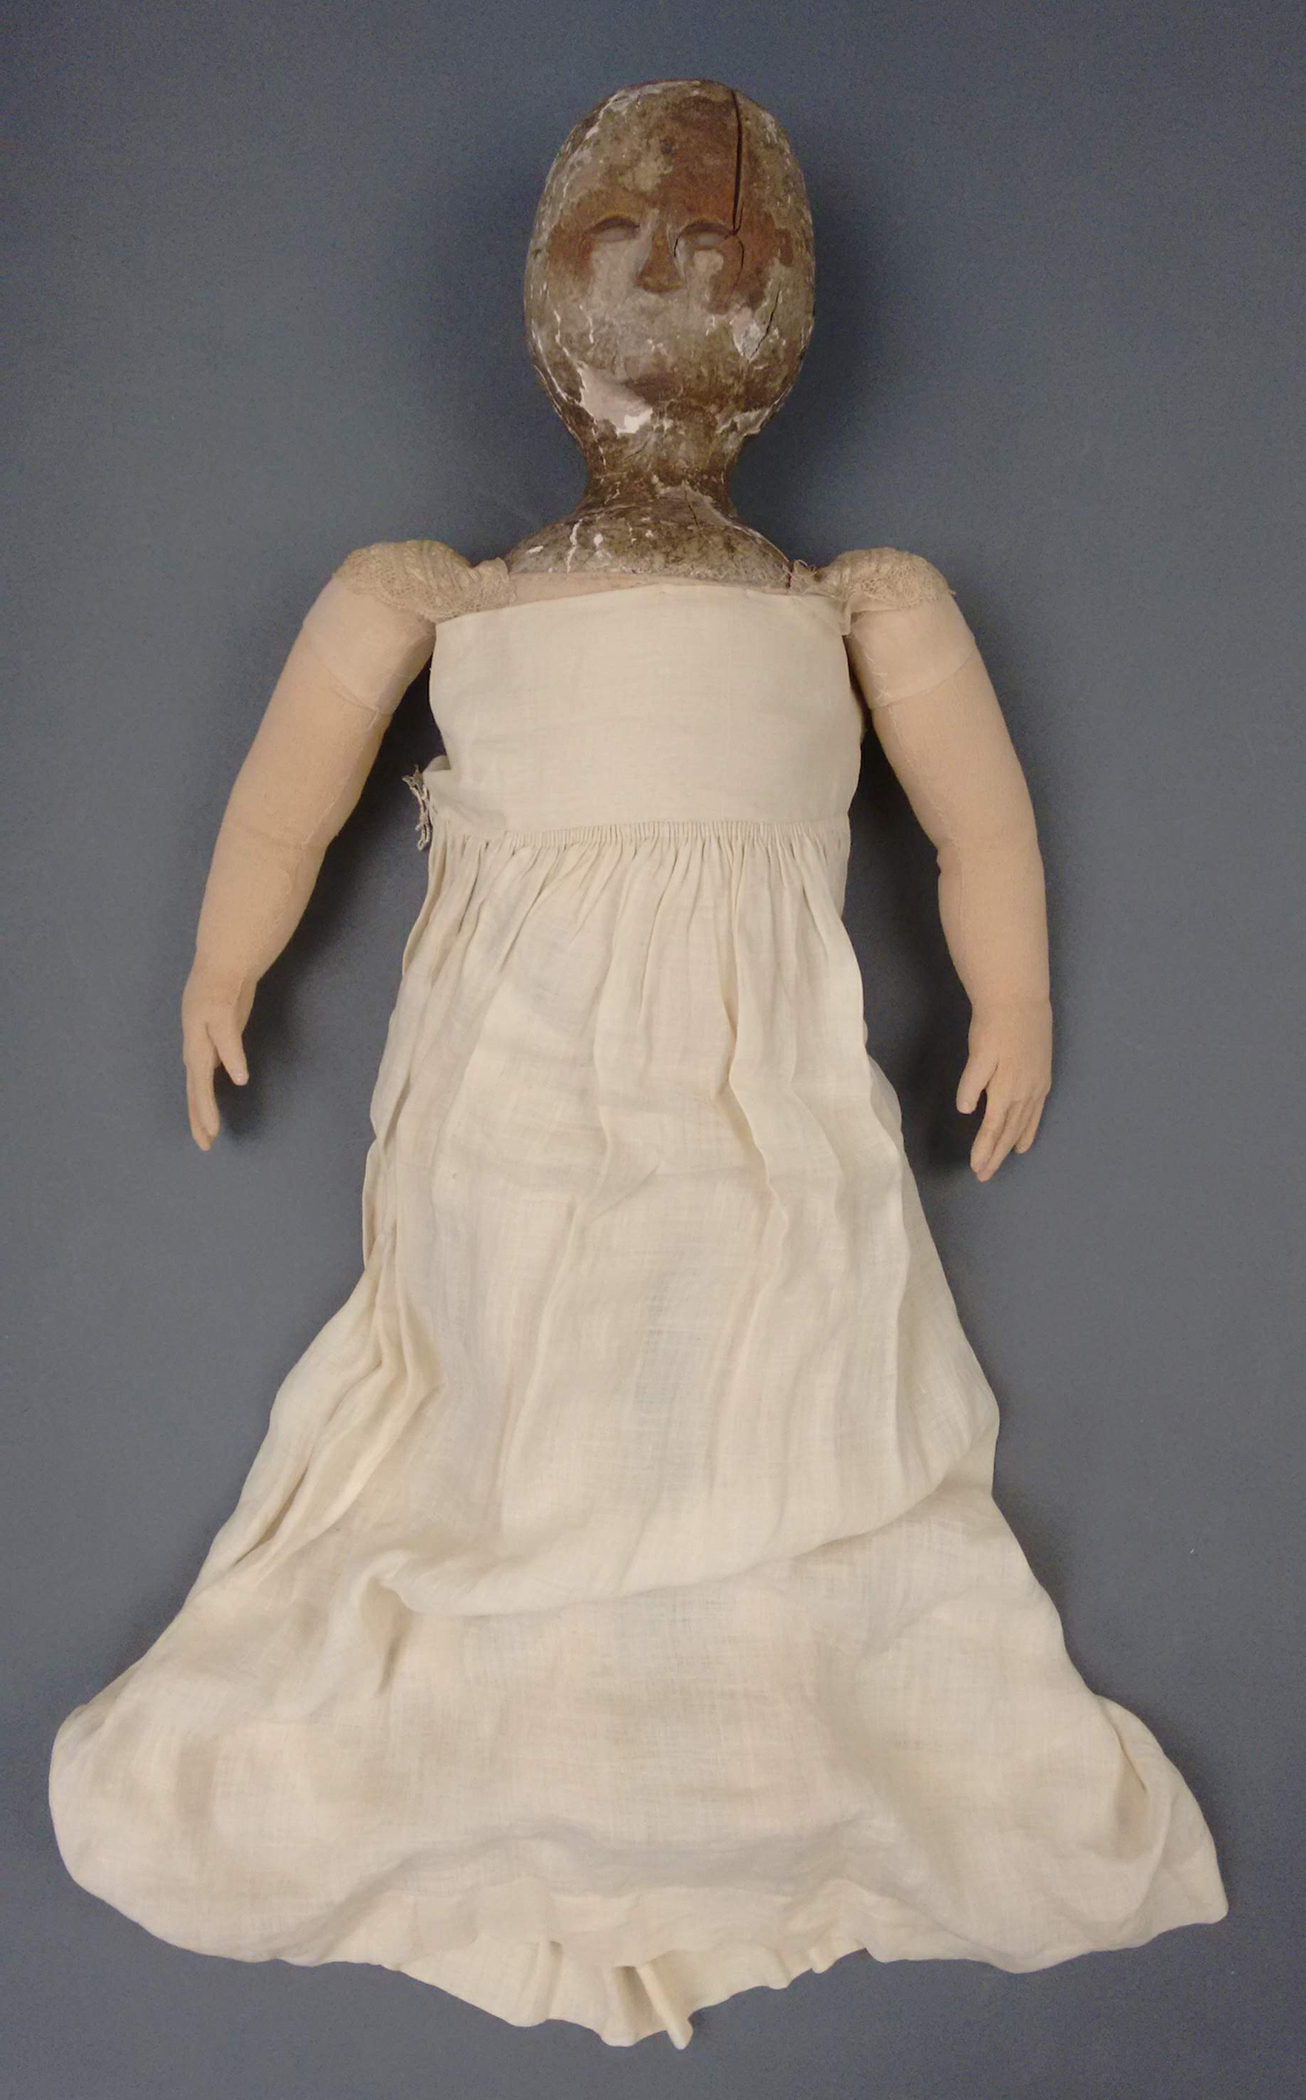 1958.1137 Doll, view 1